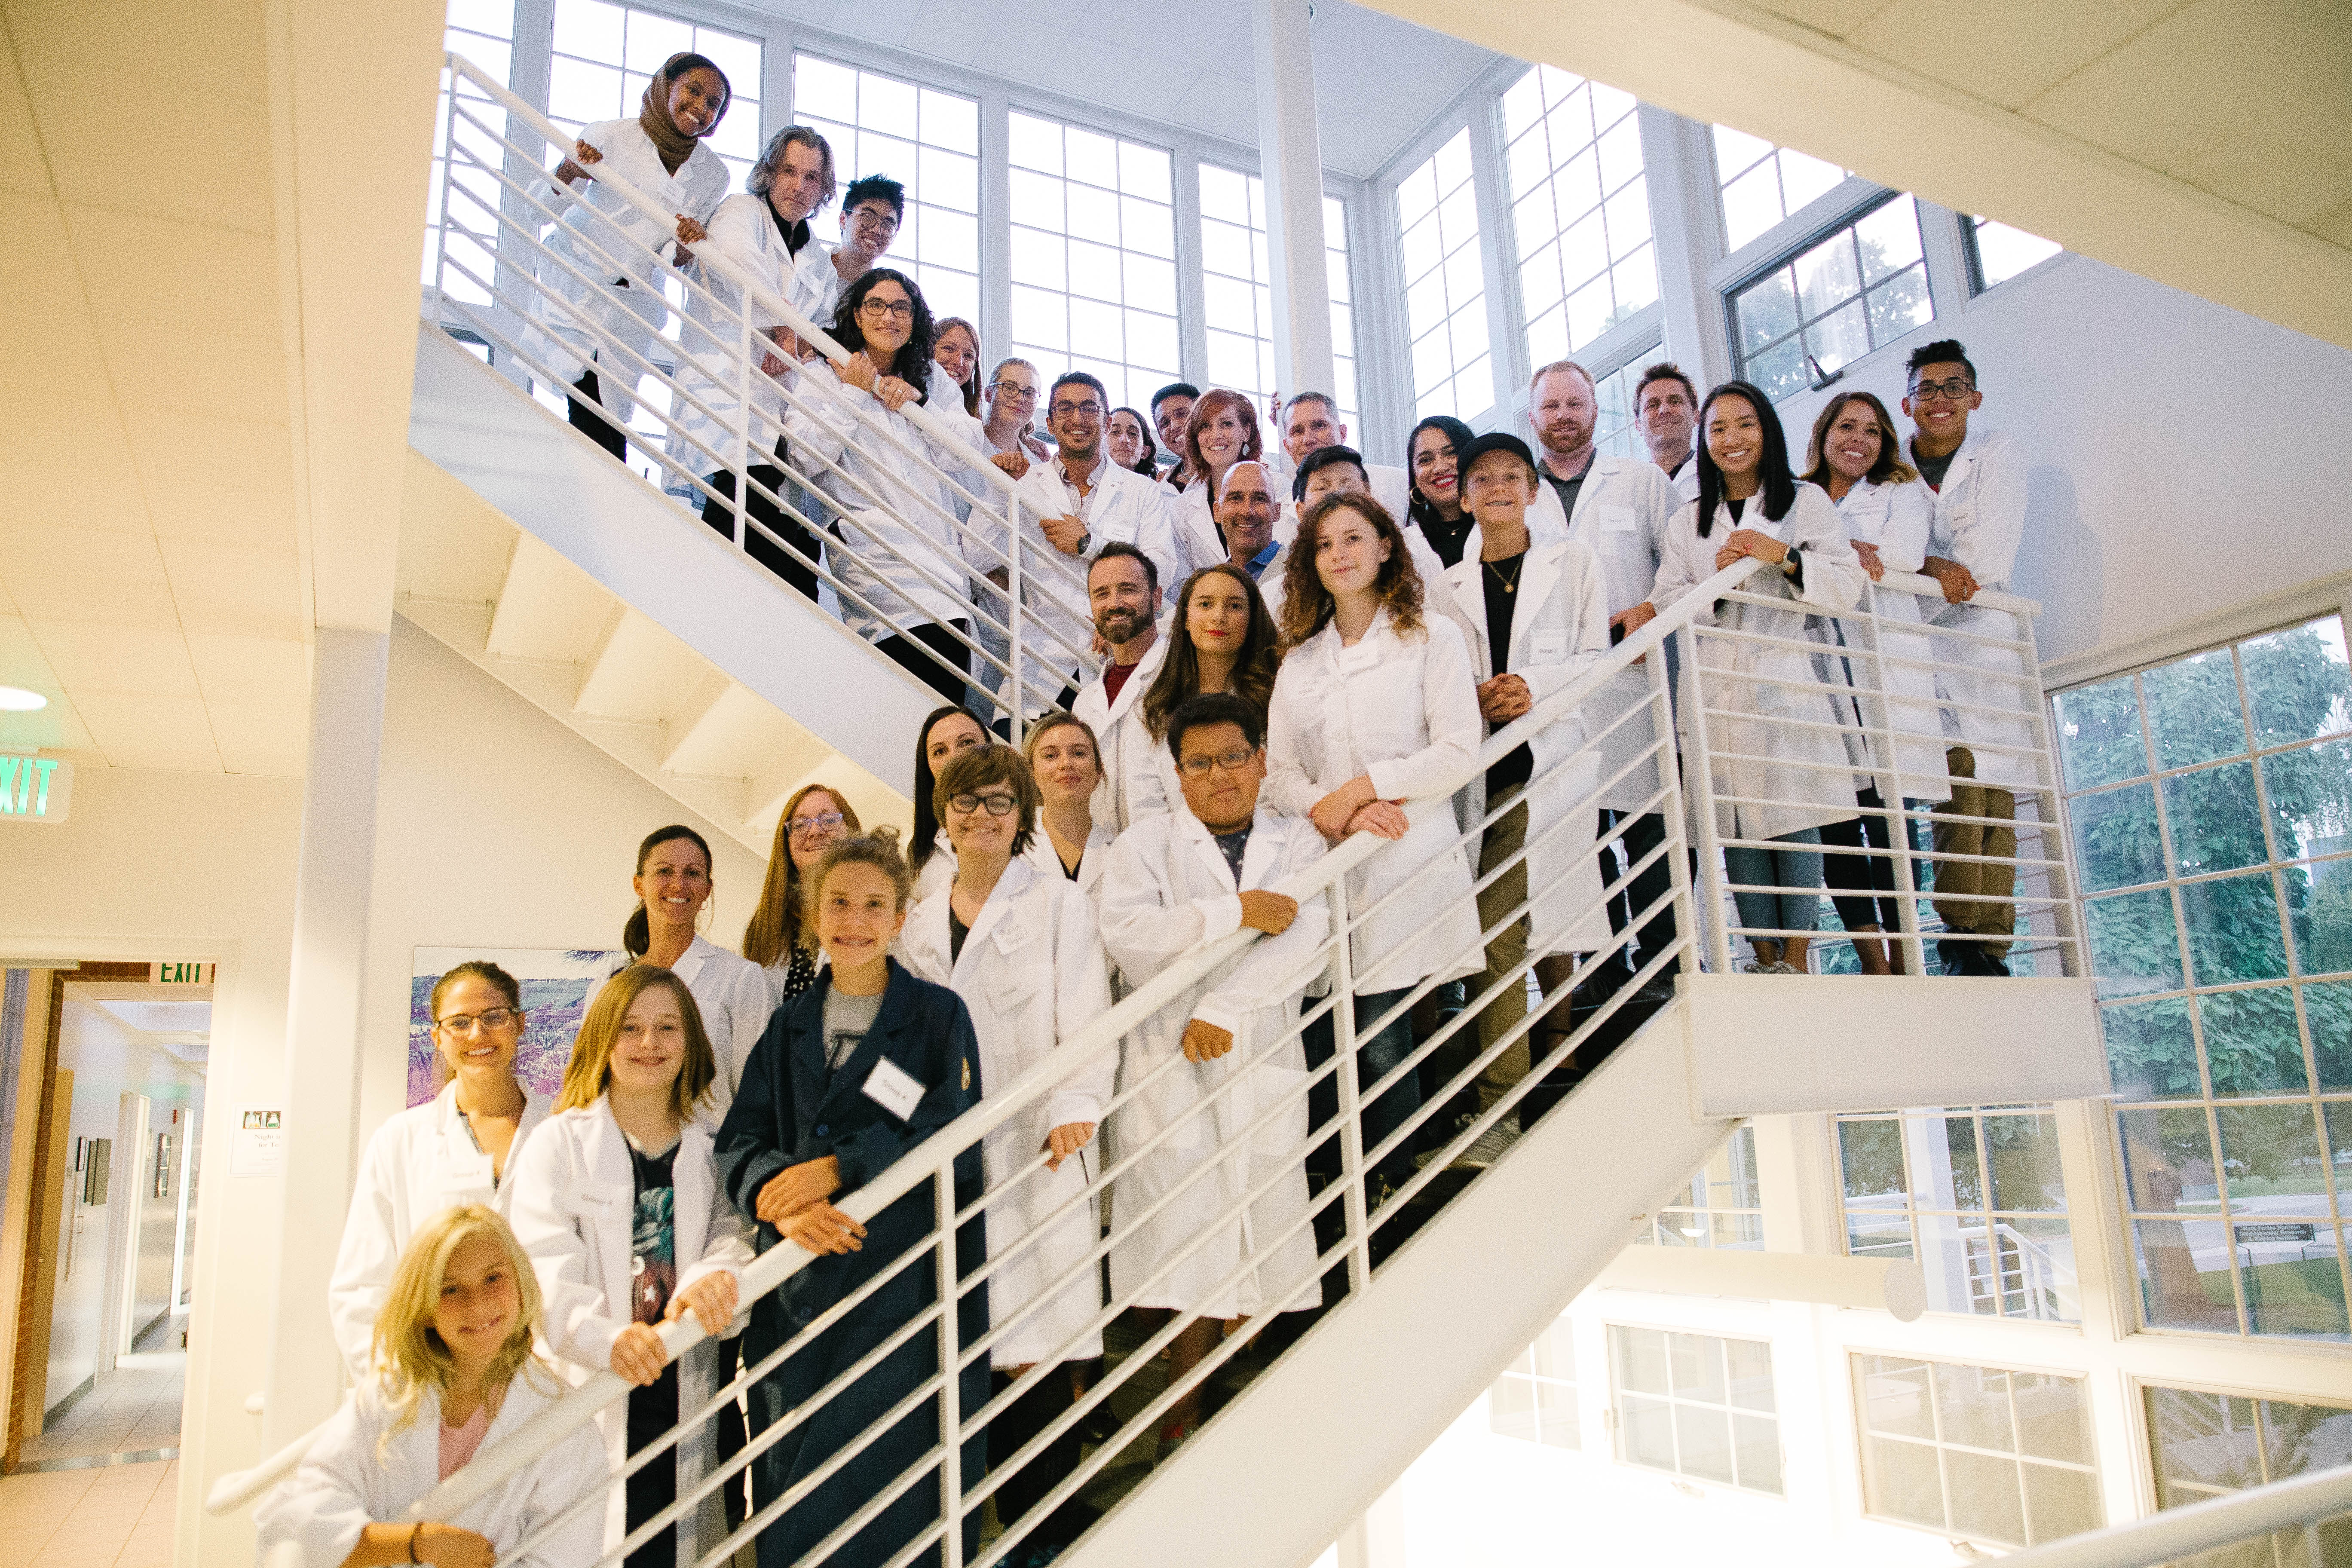 Teenagers visit CVRTI for an exciting 'Night in the Lab'